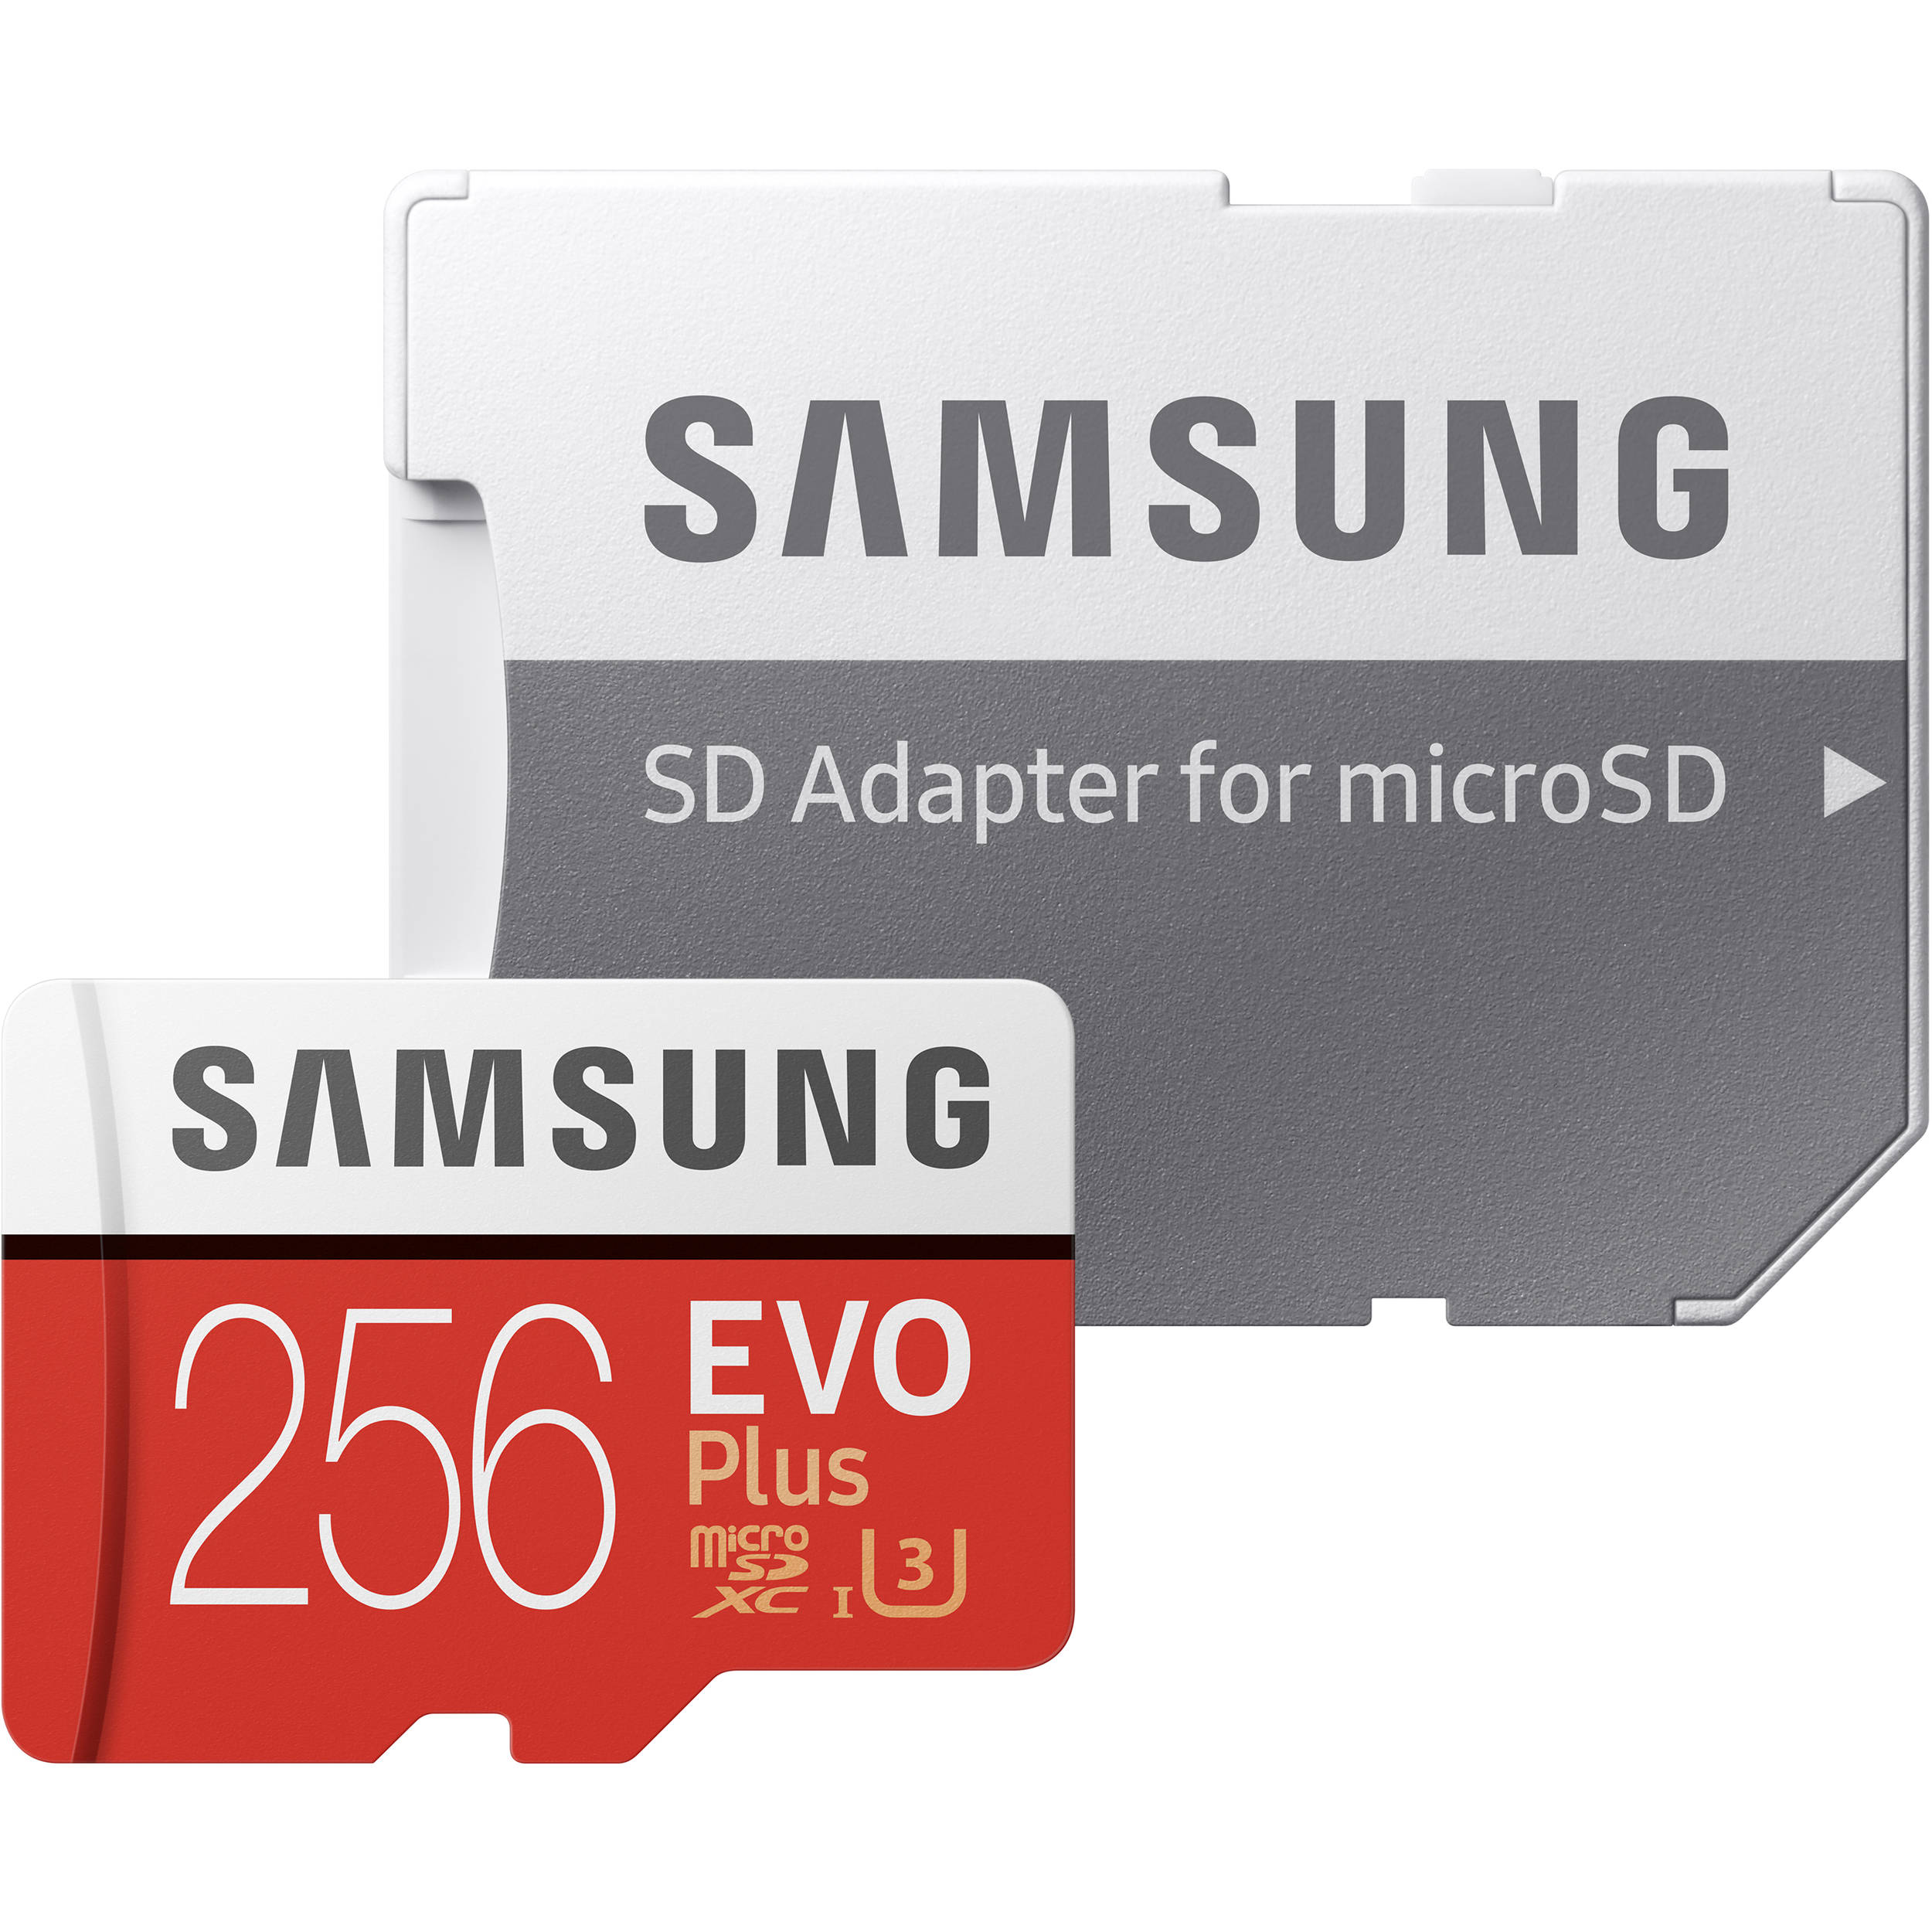 Samsung 256GB EVO Plus UHS-I microSDXC Memory Card with SD Adapter